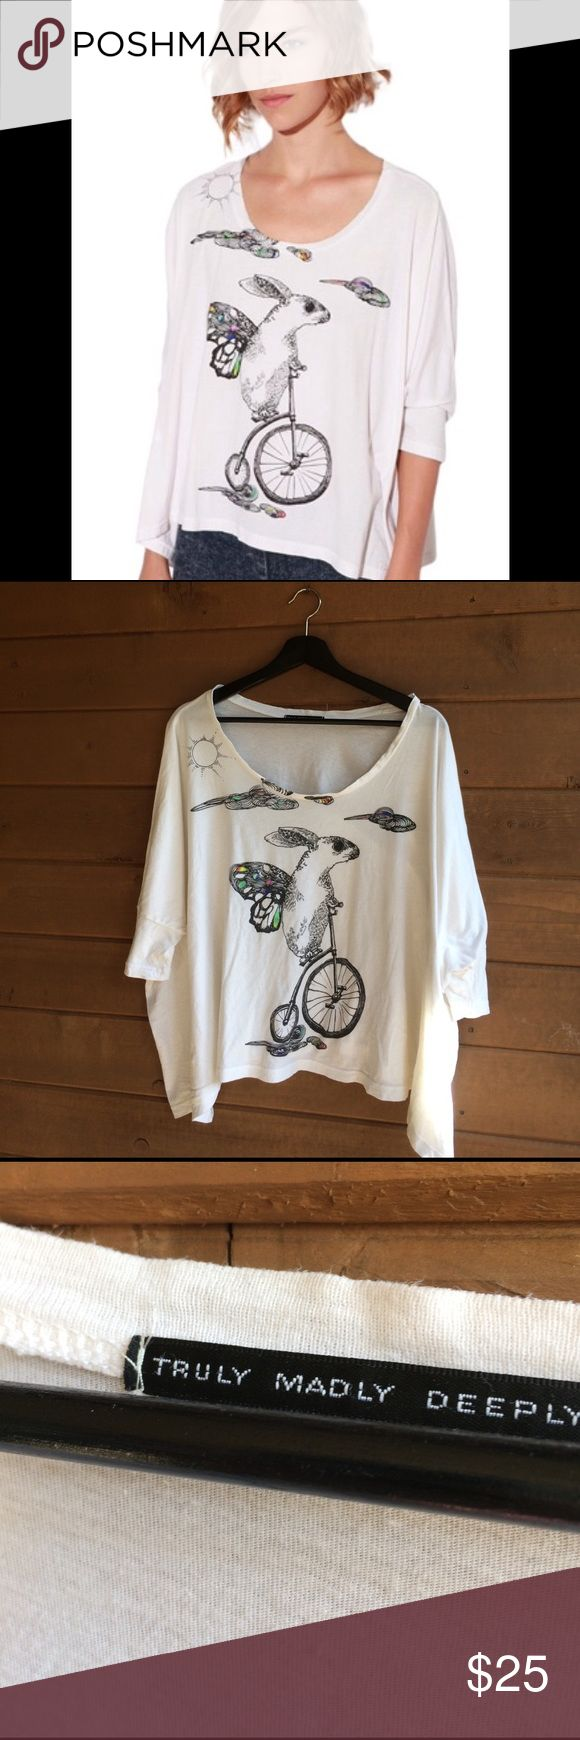 Truly Madly Deeply Urban Outfitters Slouchy Top Truly Madly Deeply Urban Outfitters Slouchy Top. Rabbit on a bicycle. One size, but will mostly fit size S, M, Or L. Loose fit. Made in USA. 100% cotton. Urban Outfitters Tops